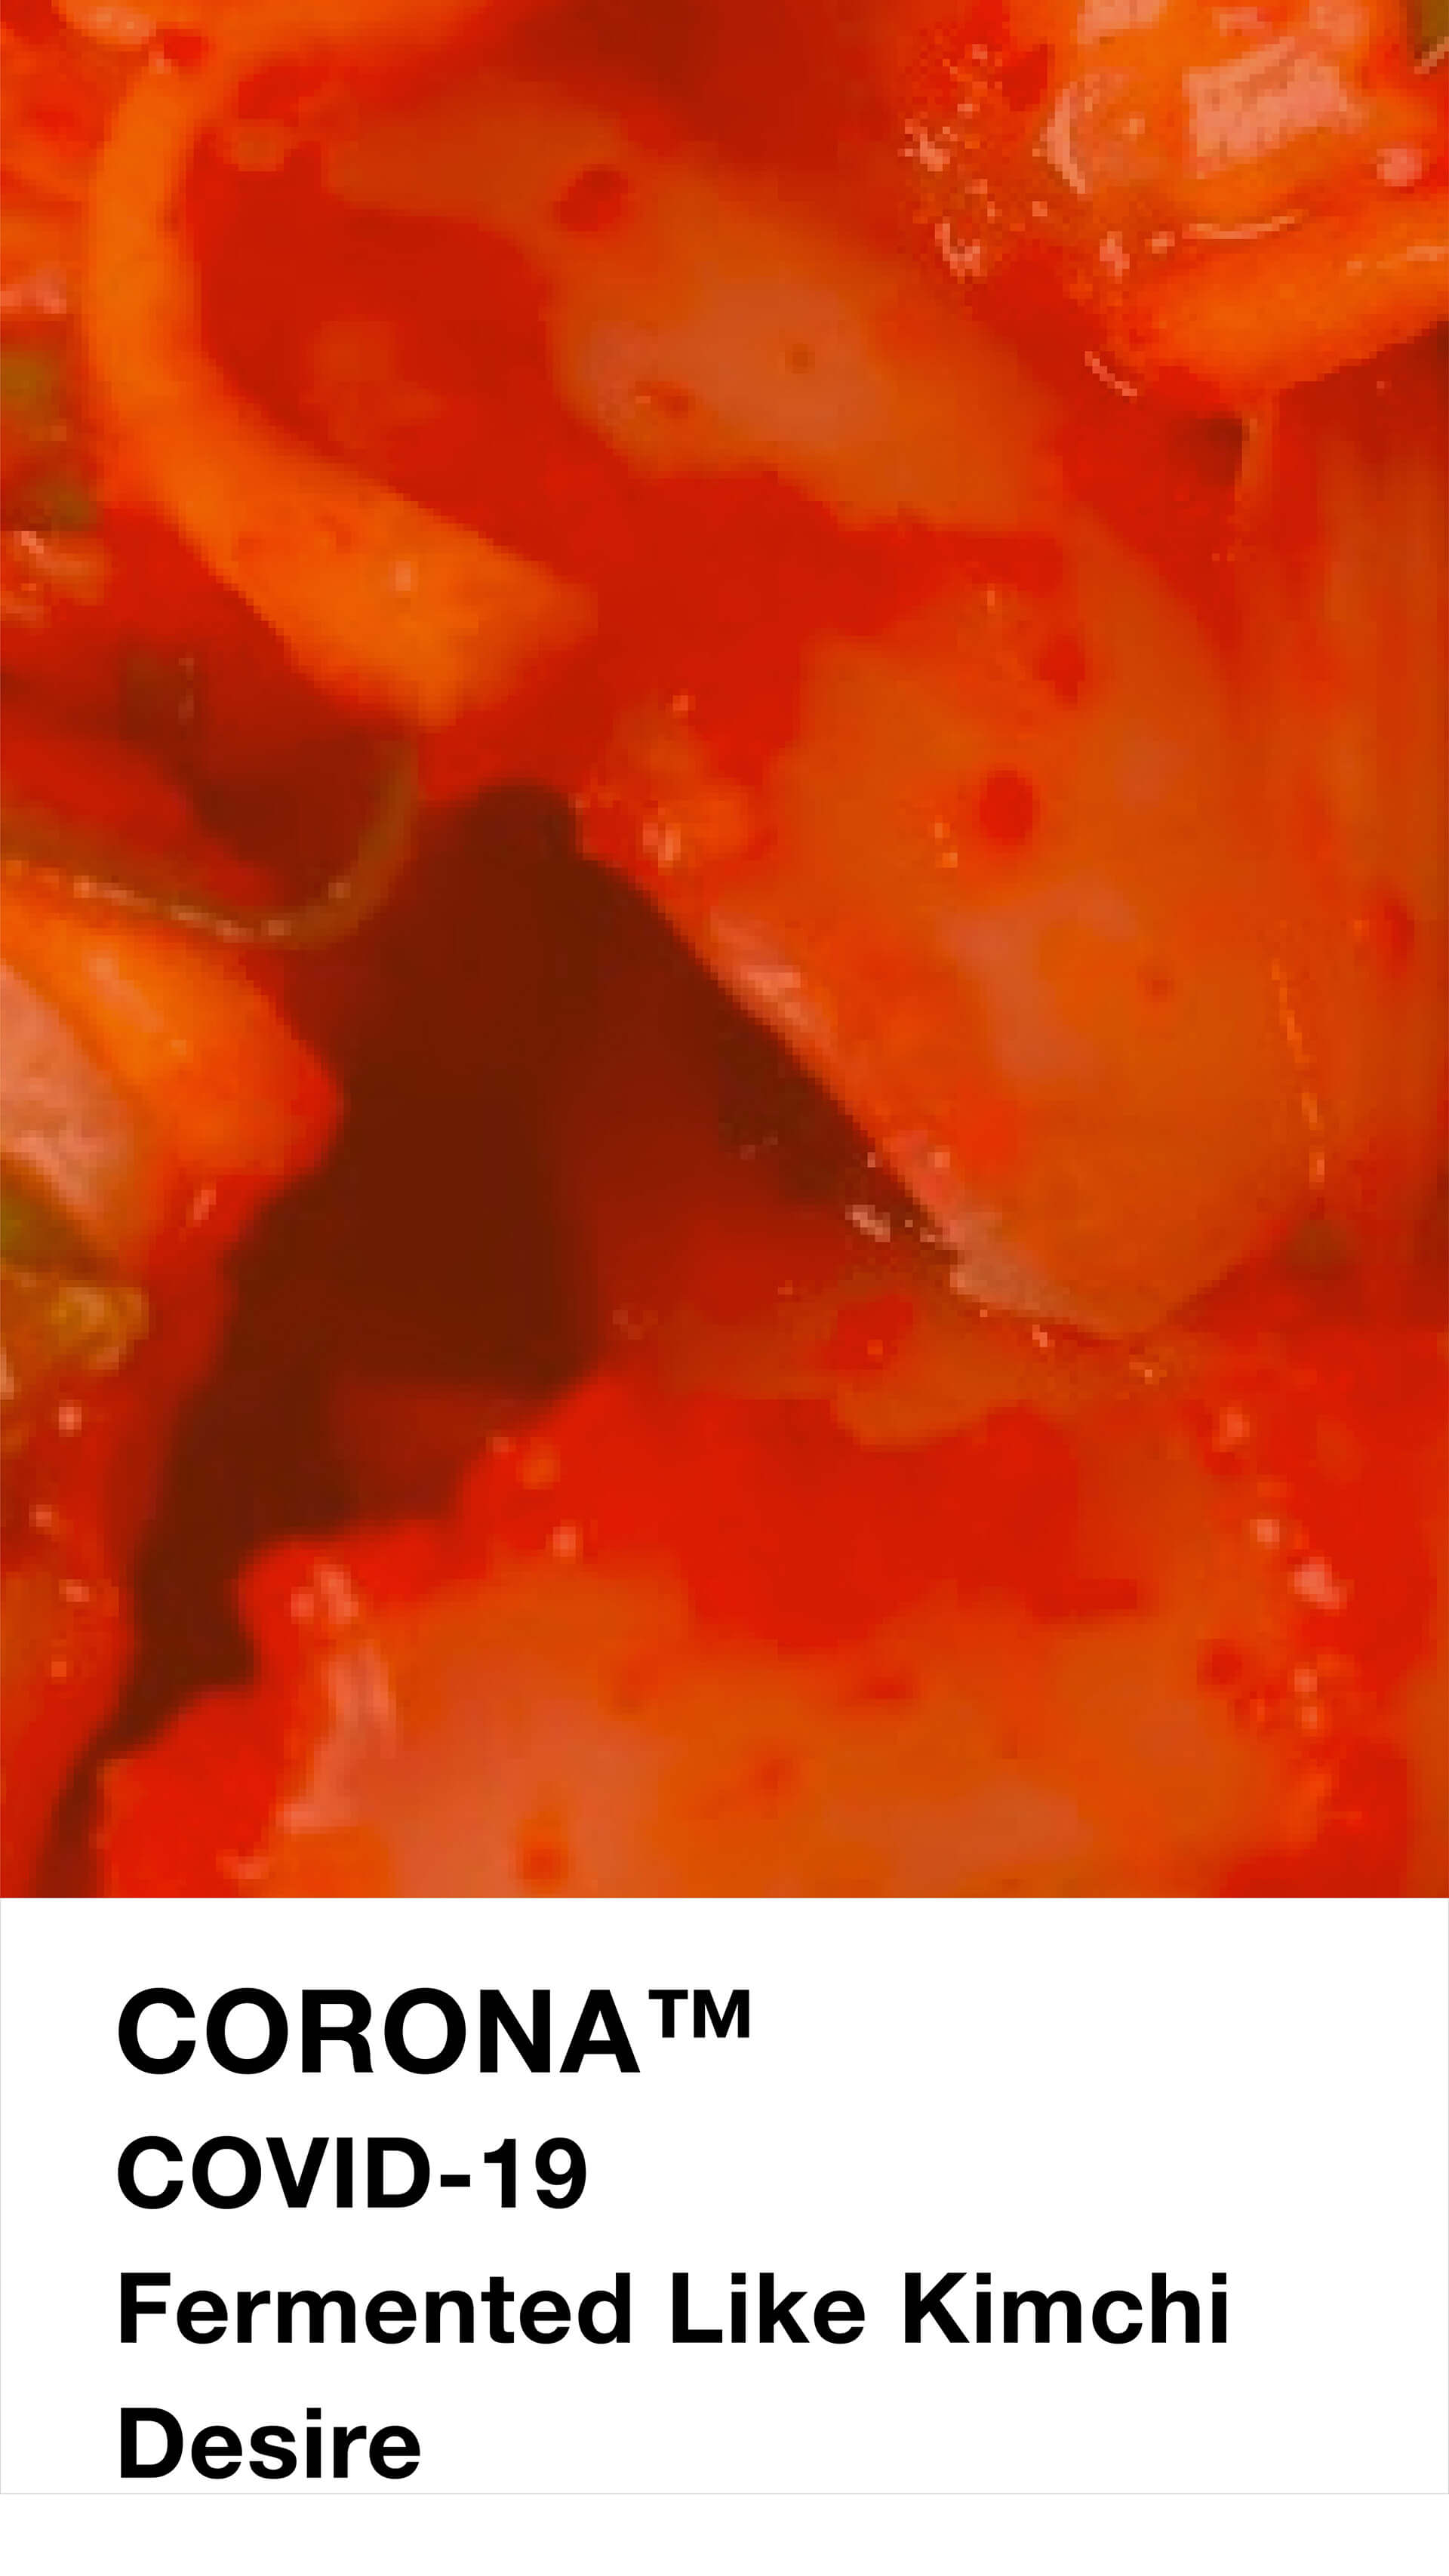 Fermented like Kimchi Desire | Pantone to Phantome: A new colour chart for the post-COVID world | Designer/Artist/Architect | STIRworld